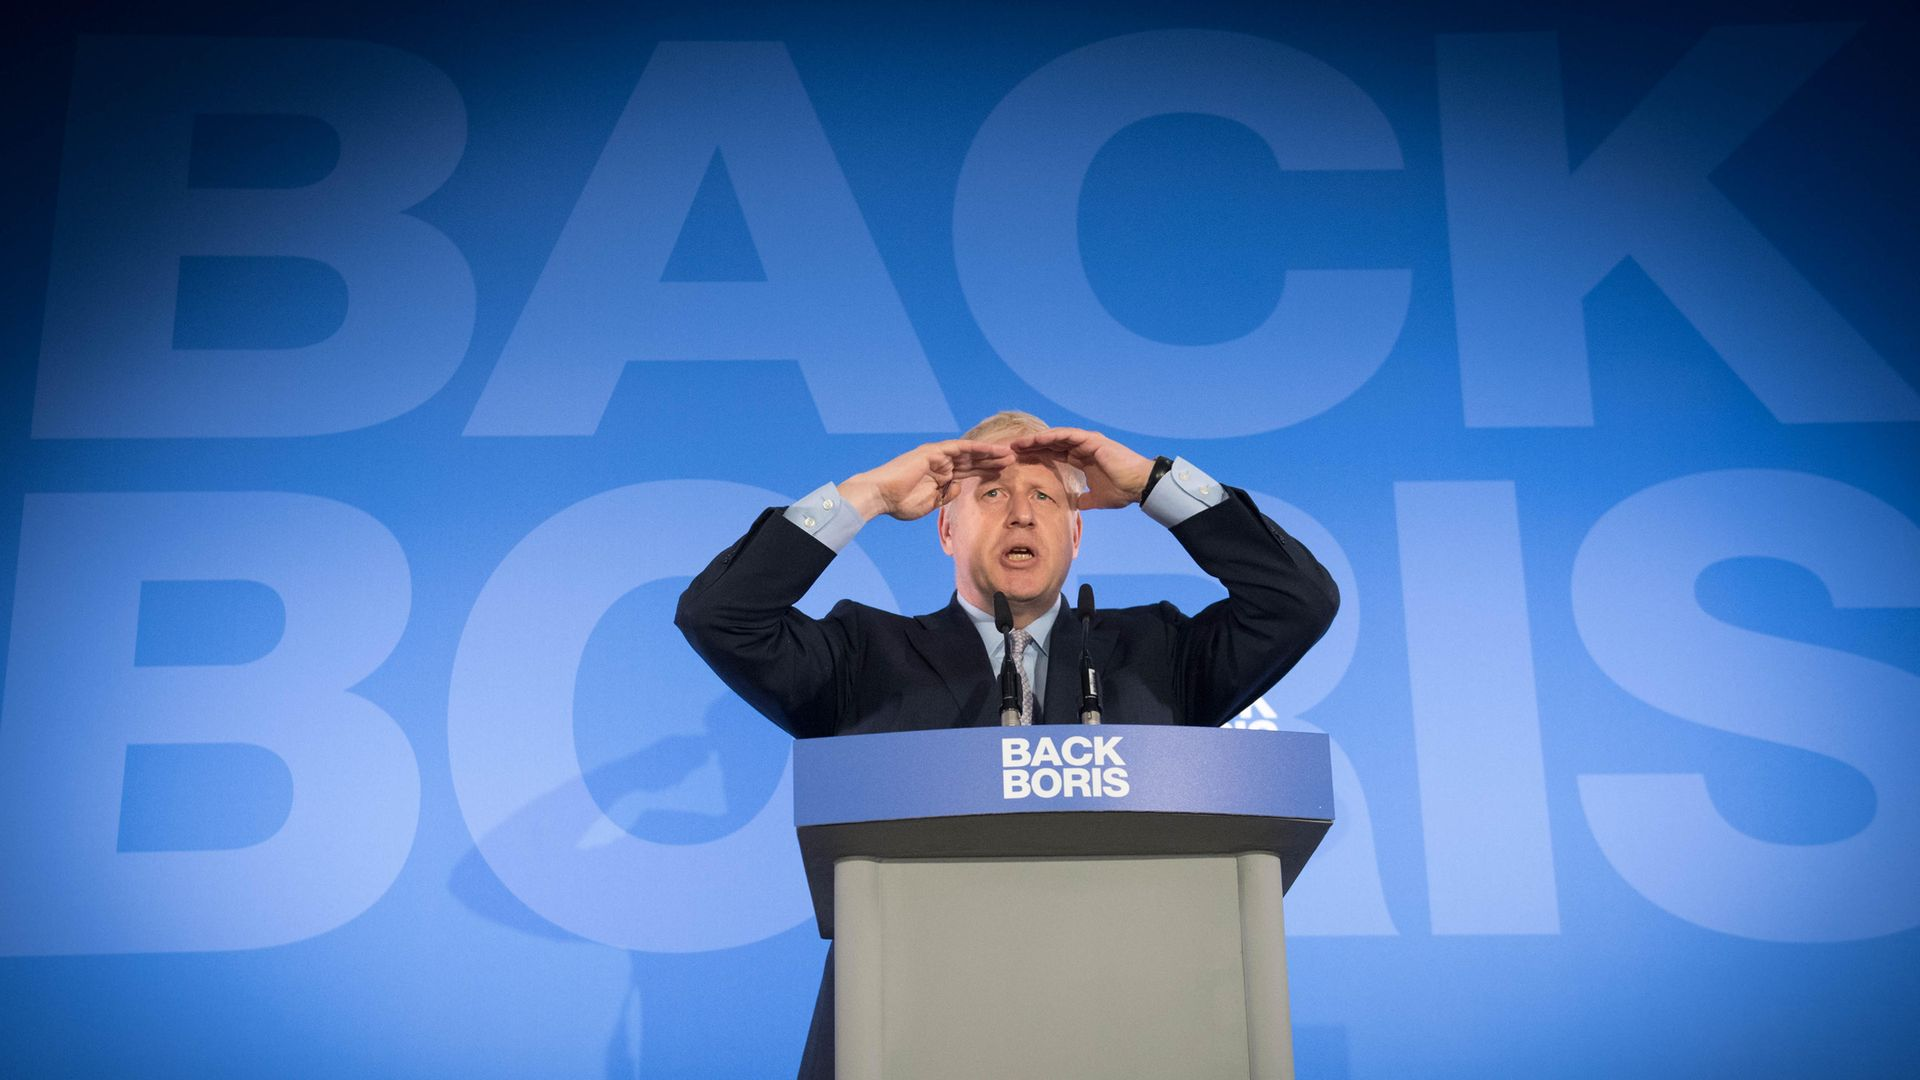 Boris Johnson during the launch of his campaign to become leader of the Conservative and Unionist Party - Credit: PA